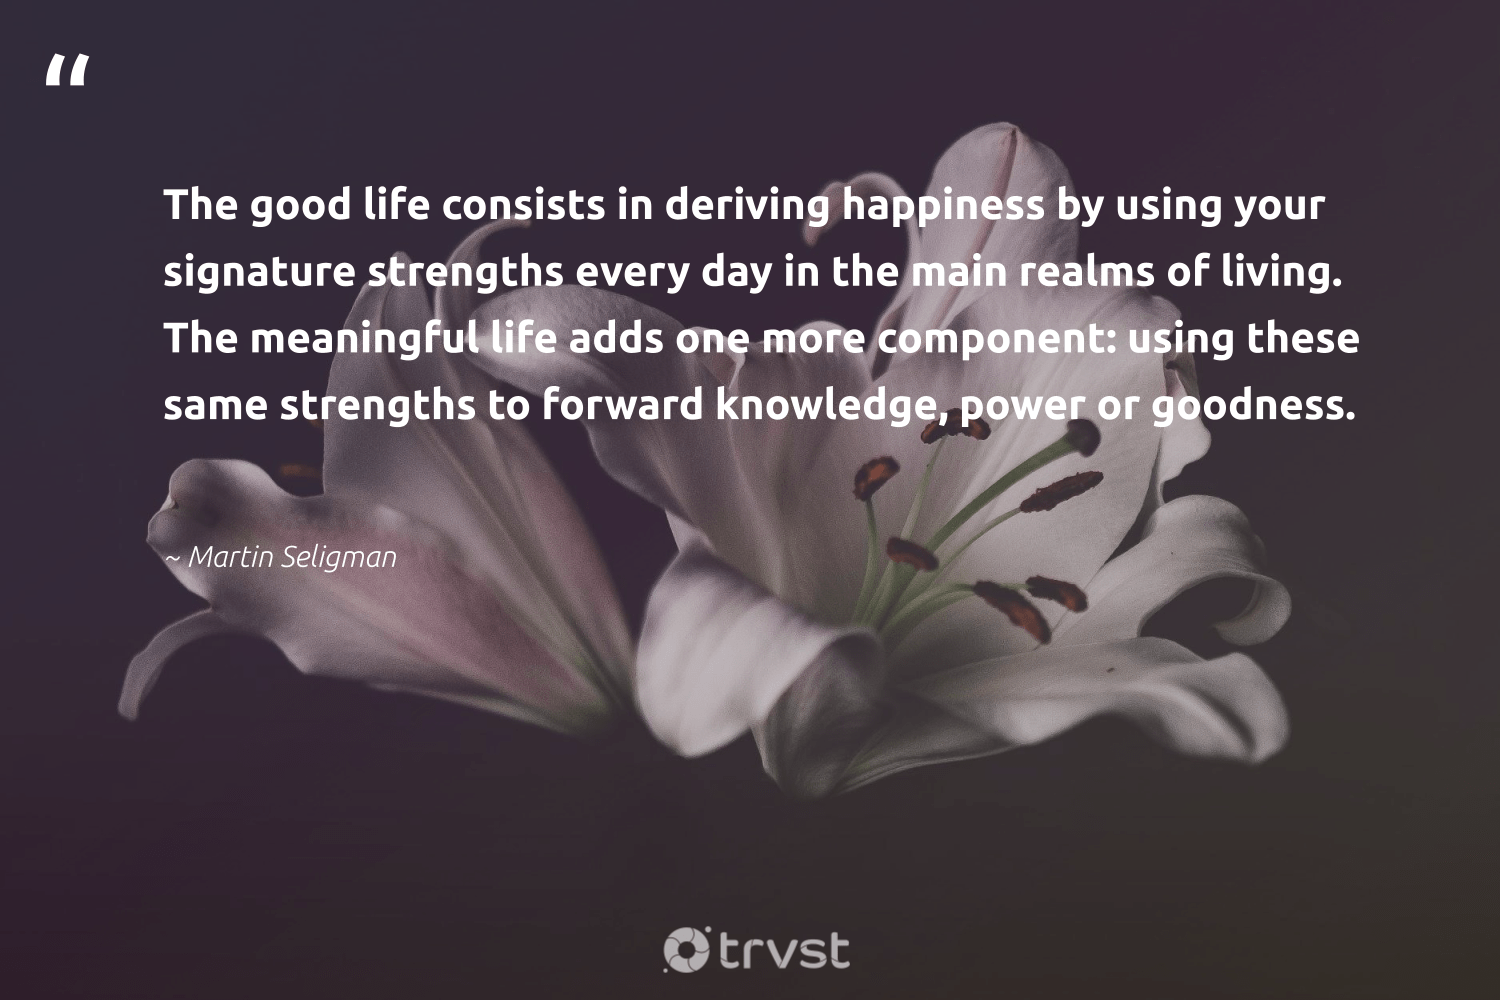 """""""The good life consists in deriving happiness by using your signature strengths every day in the main realms of living. The meaningful life adds one more component: using these same strengths to forward knowledge, power or goodness.""""  - Martin Seligman #trvst #quotes #happiness #togetherwecan #changetheworld #begreat #socialchange #changemakers #thinkgreen #health #collectiveaction #nevergiveup"""